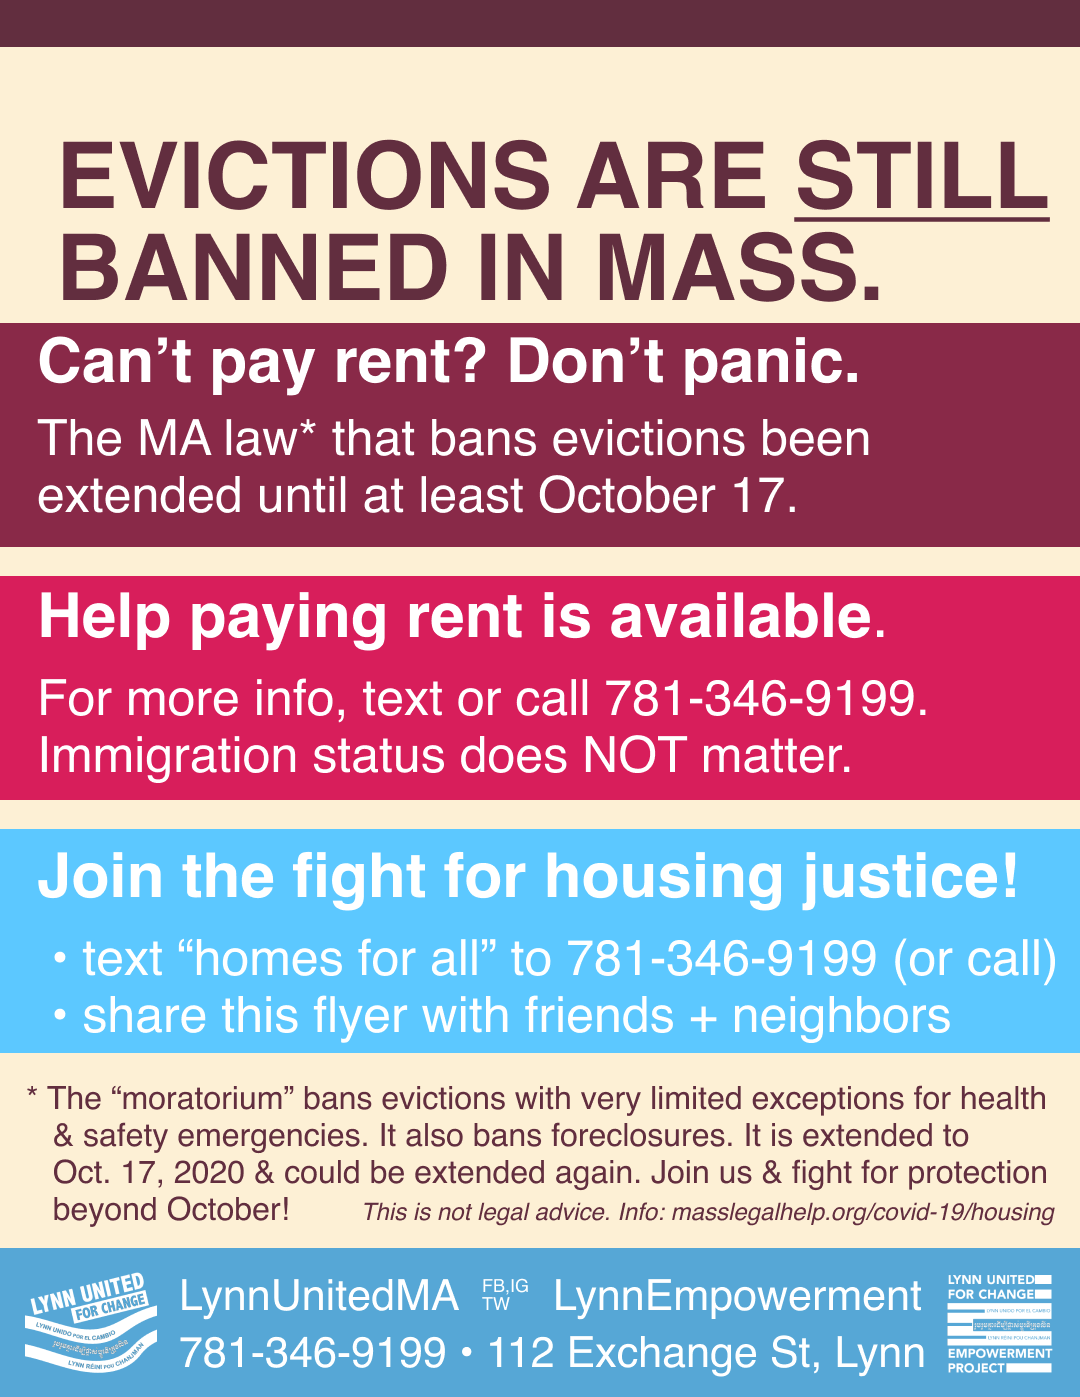 Flyer with information about MA state law that bans evictions during coronavirus emergency